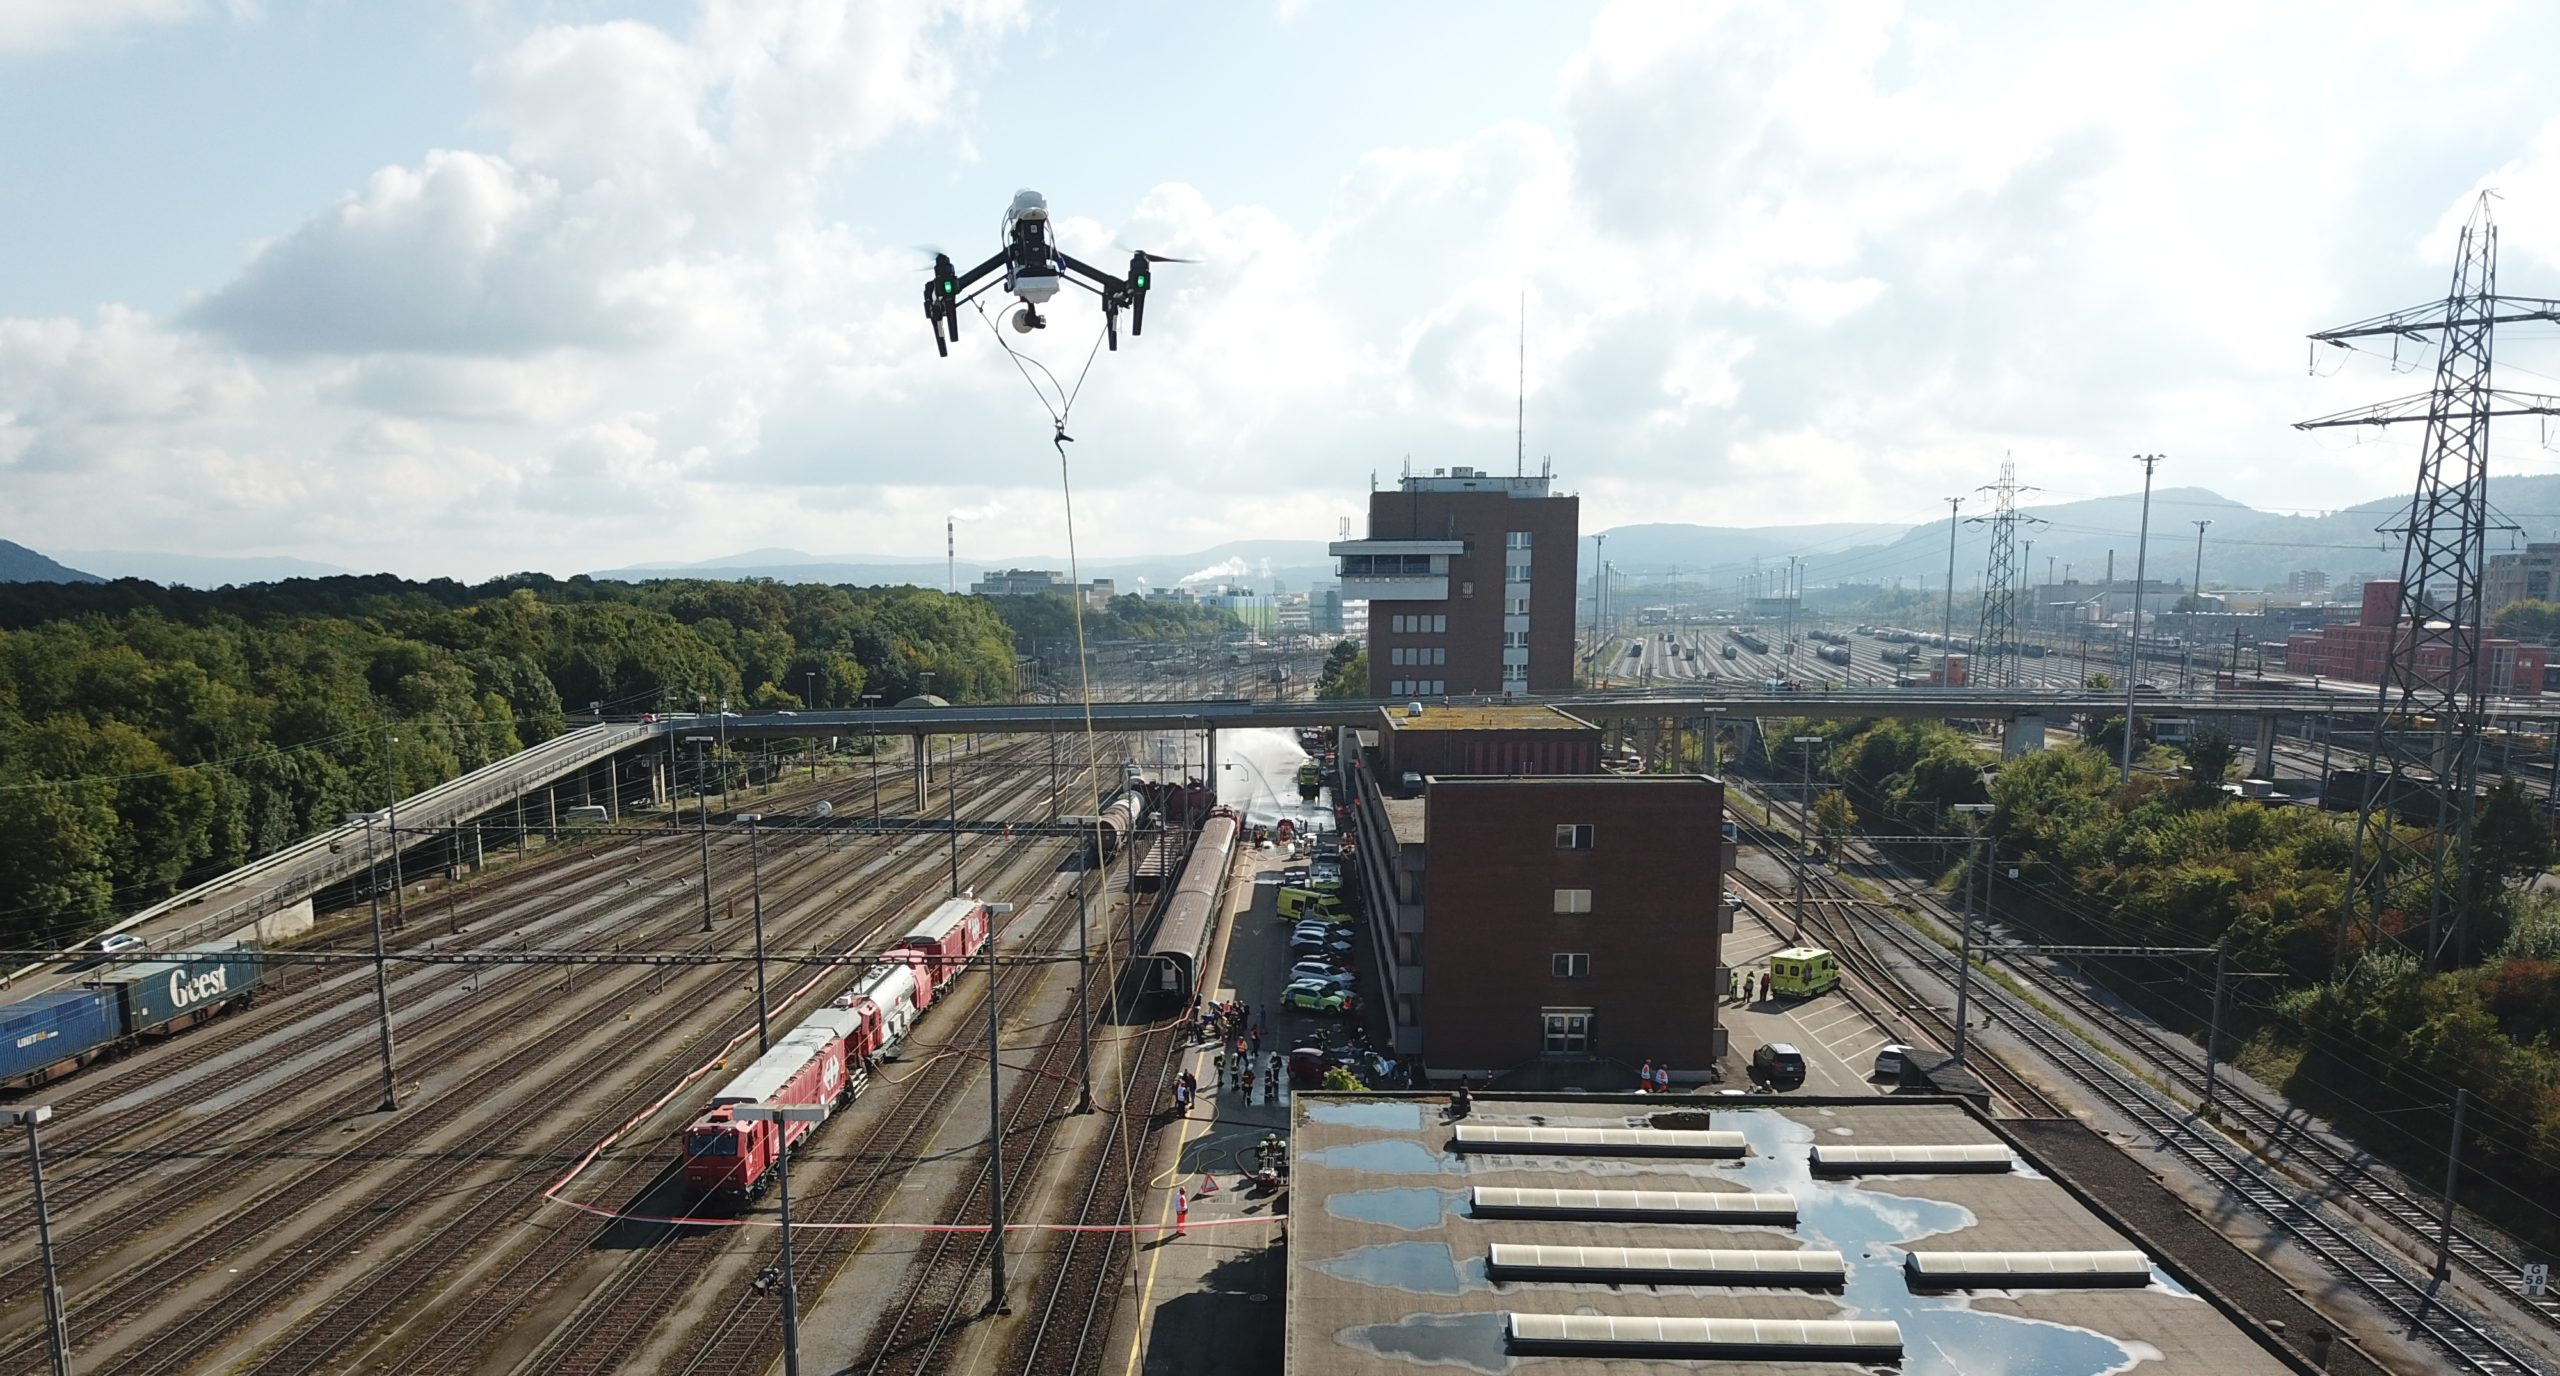 SBB & Elistair Experimented Drone Tether System to Cover Train Accident Involving Chemical Products